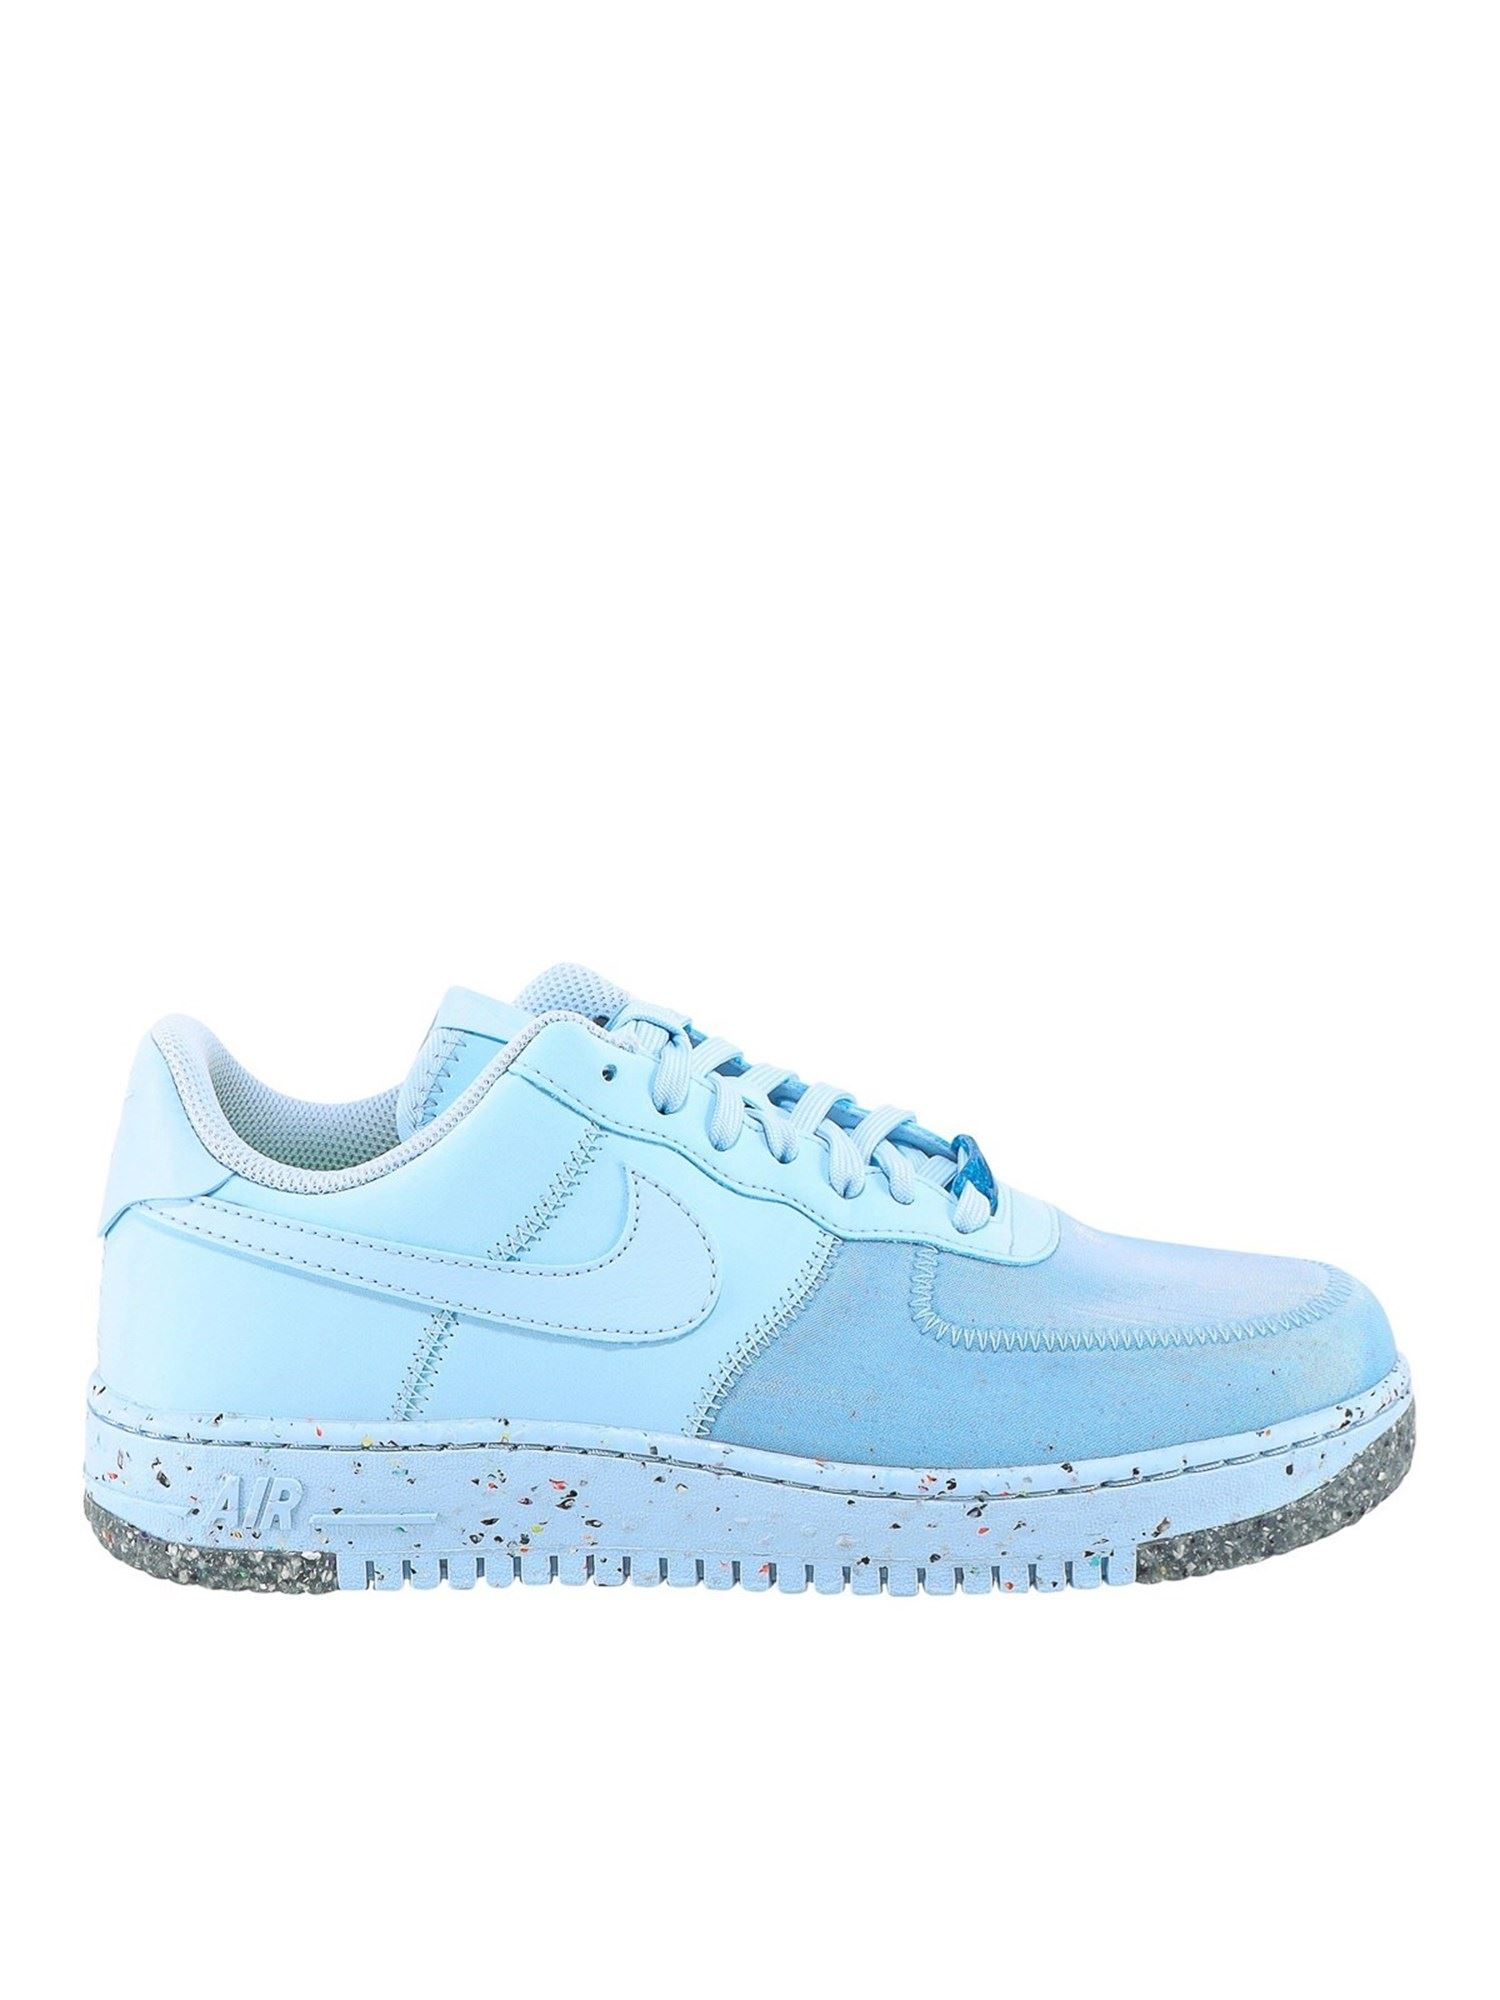 Nike AIR FORCE 1 FAUX LEATHER SNEAKERS IN LIGHT BLUE